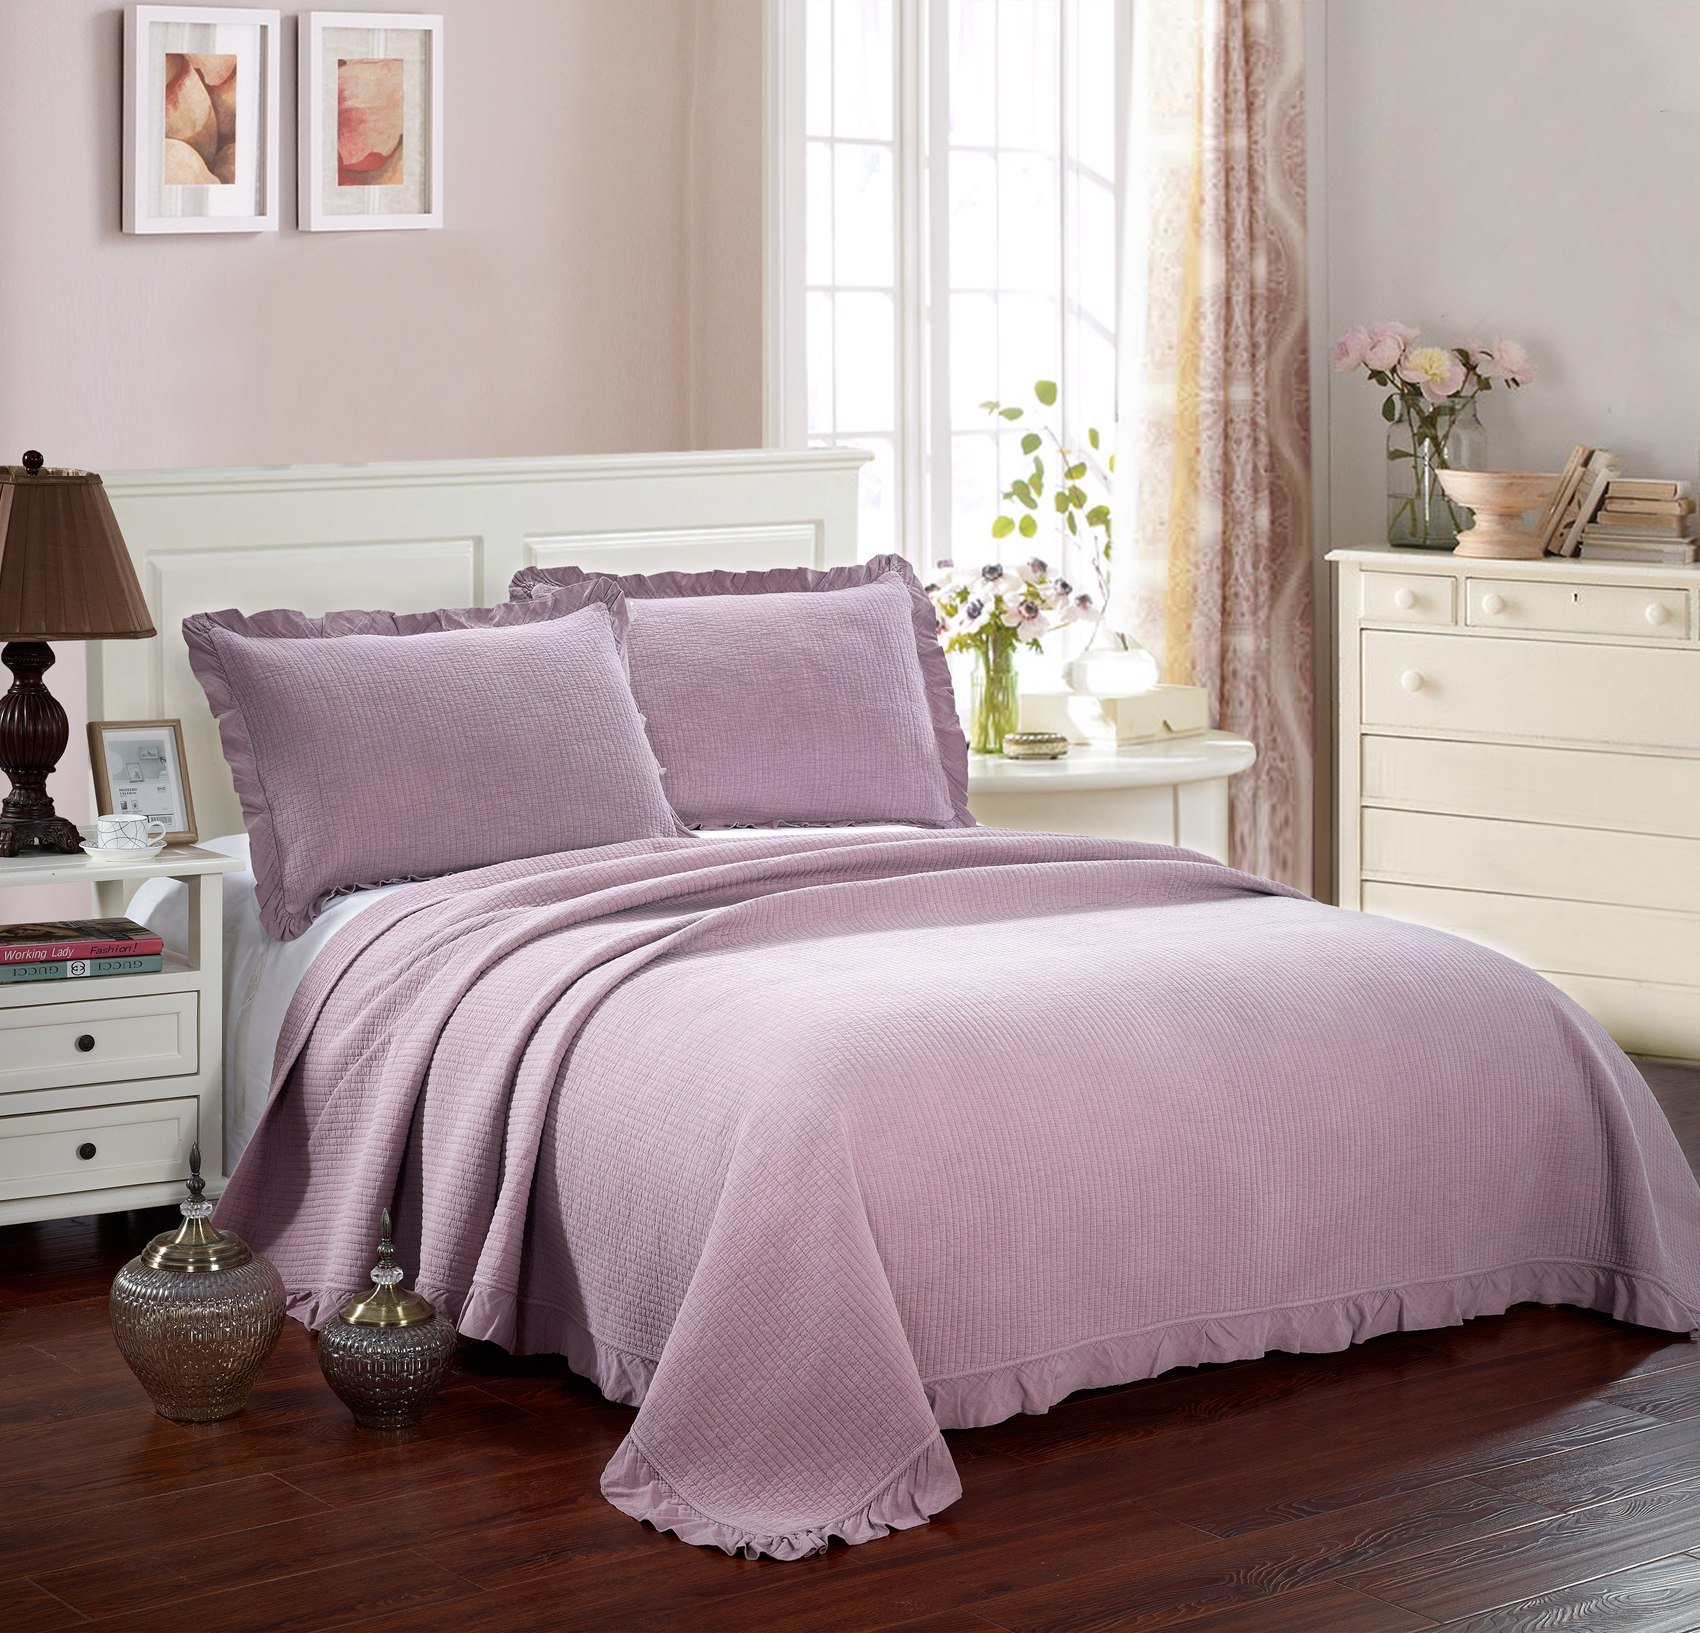 3 PCS Solid Modern Patchwork Stitching Quilt Set,Cotton Soft Lightweight Bedspread/Coverlet/Bed Cover with Ruffle Floral Edge,Full/Queen(86''x94''),Purple Grey,Hypoallergenic